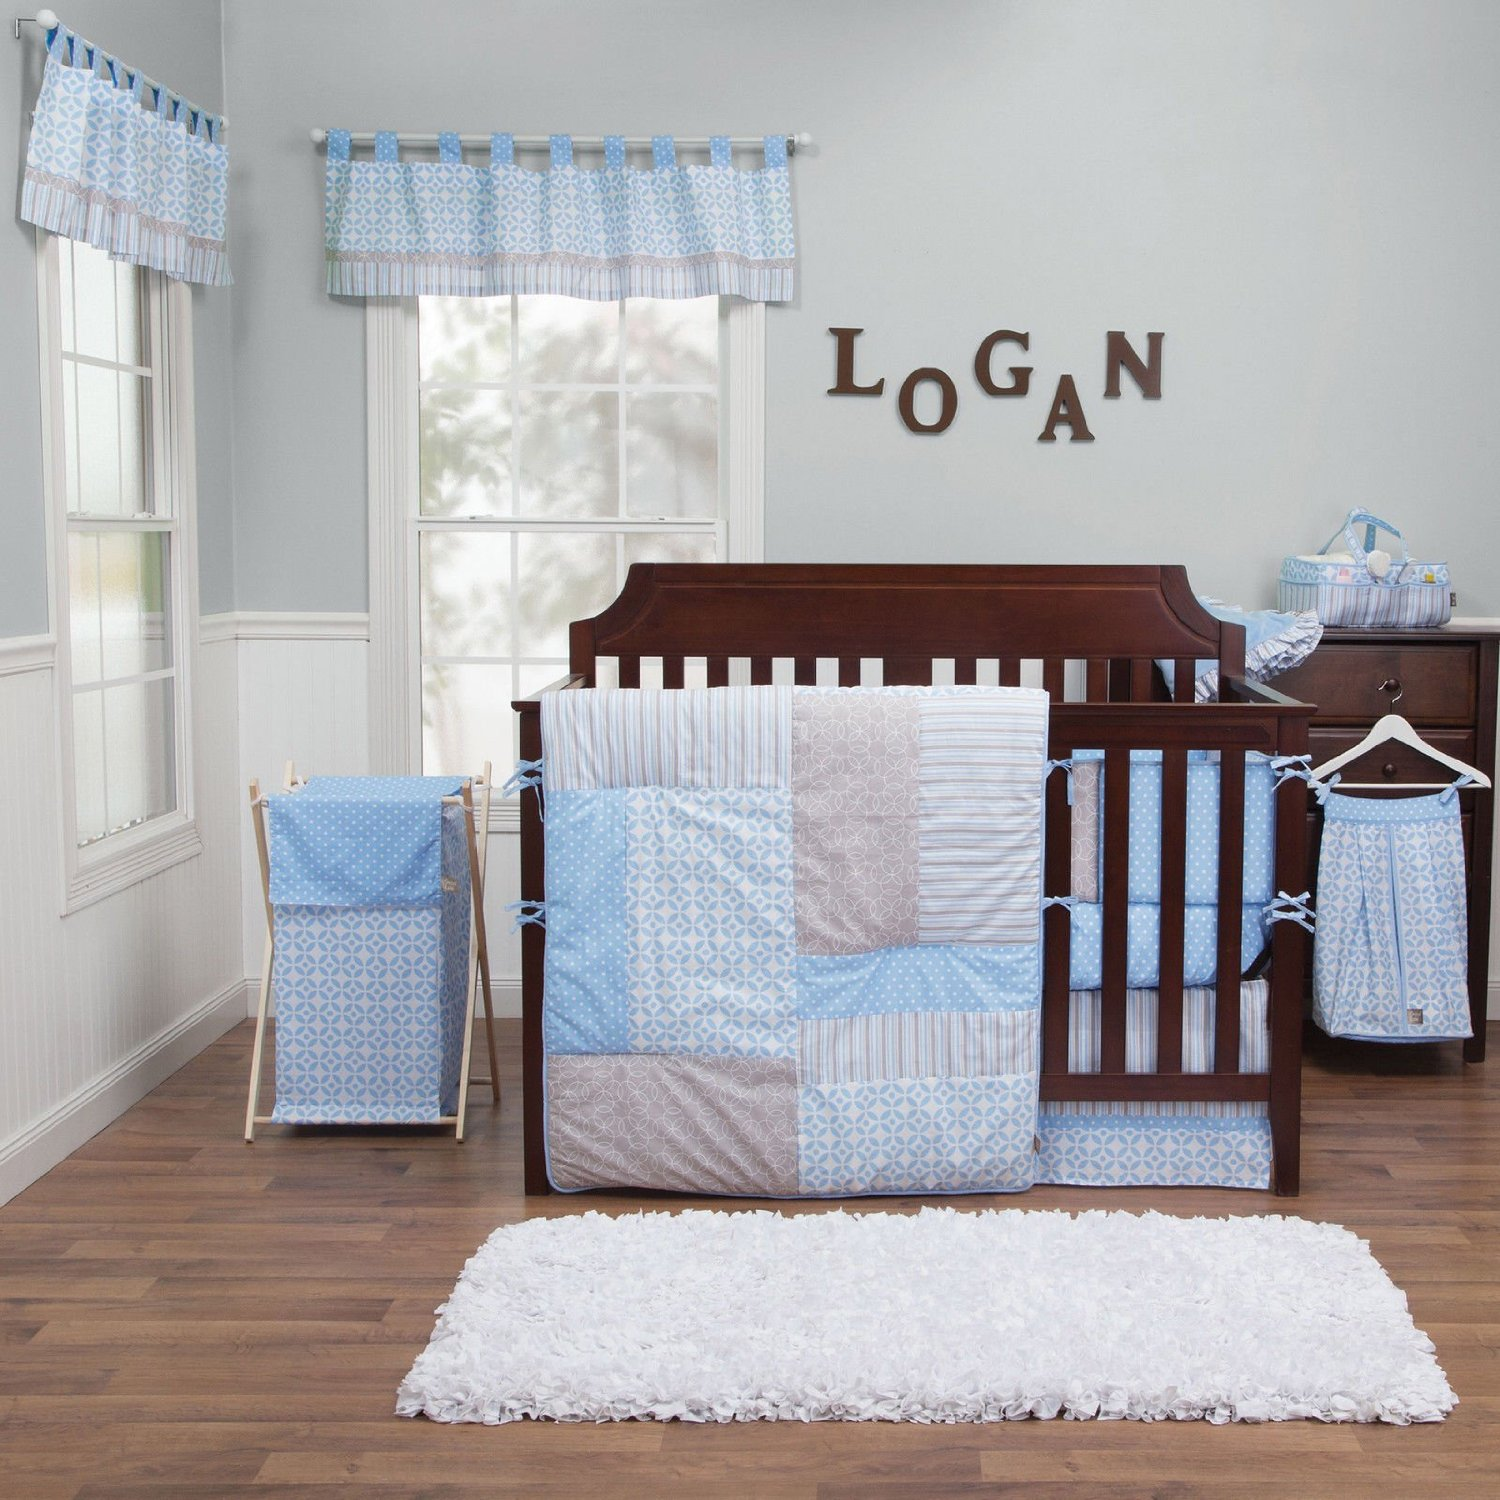 This Unique Baby Bedding 5 Piece Crib Set Is Great For Your New Nursery